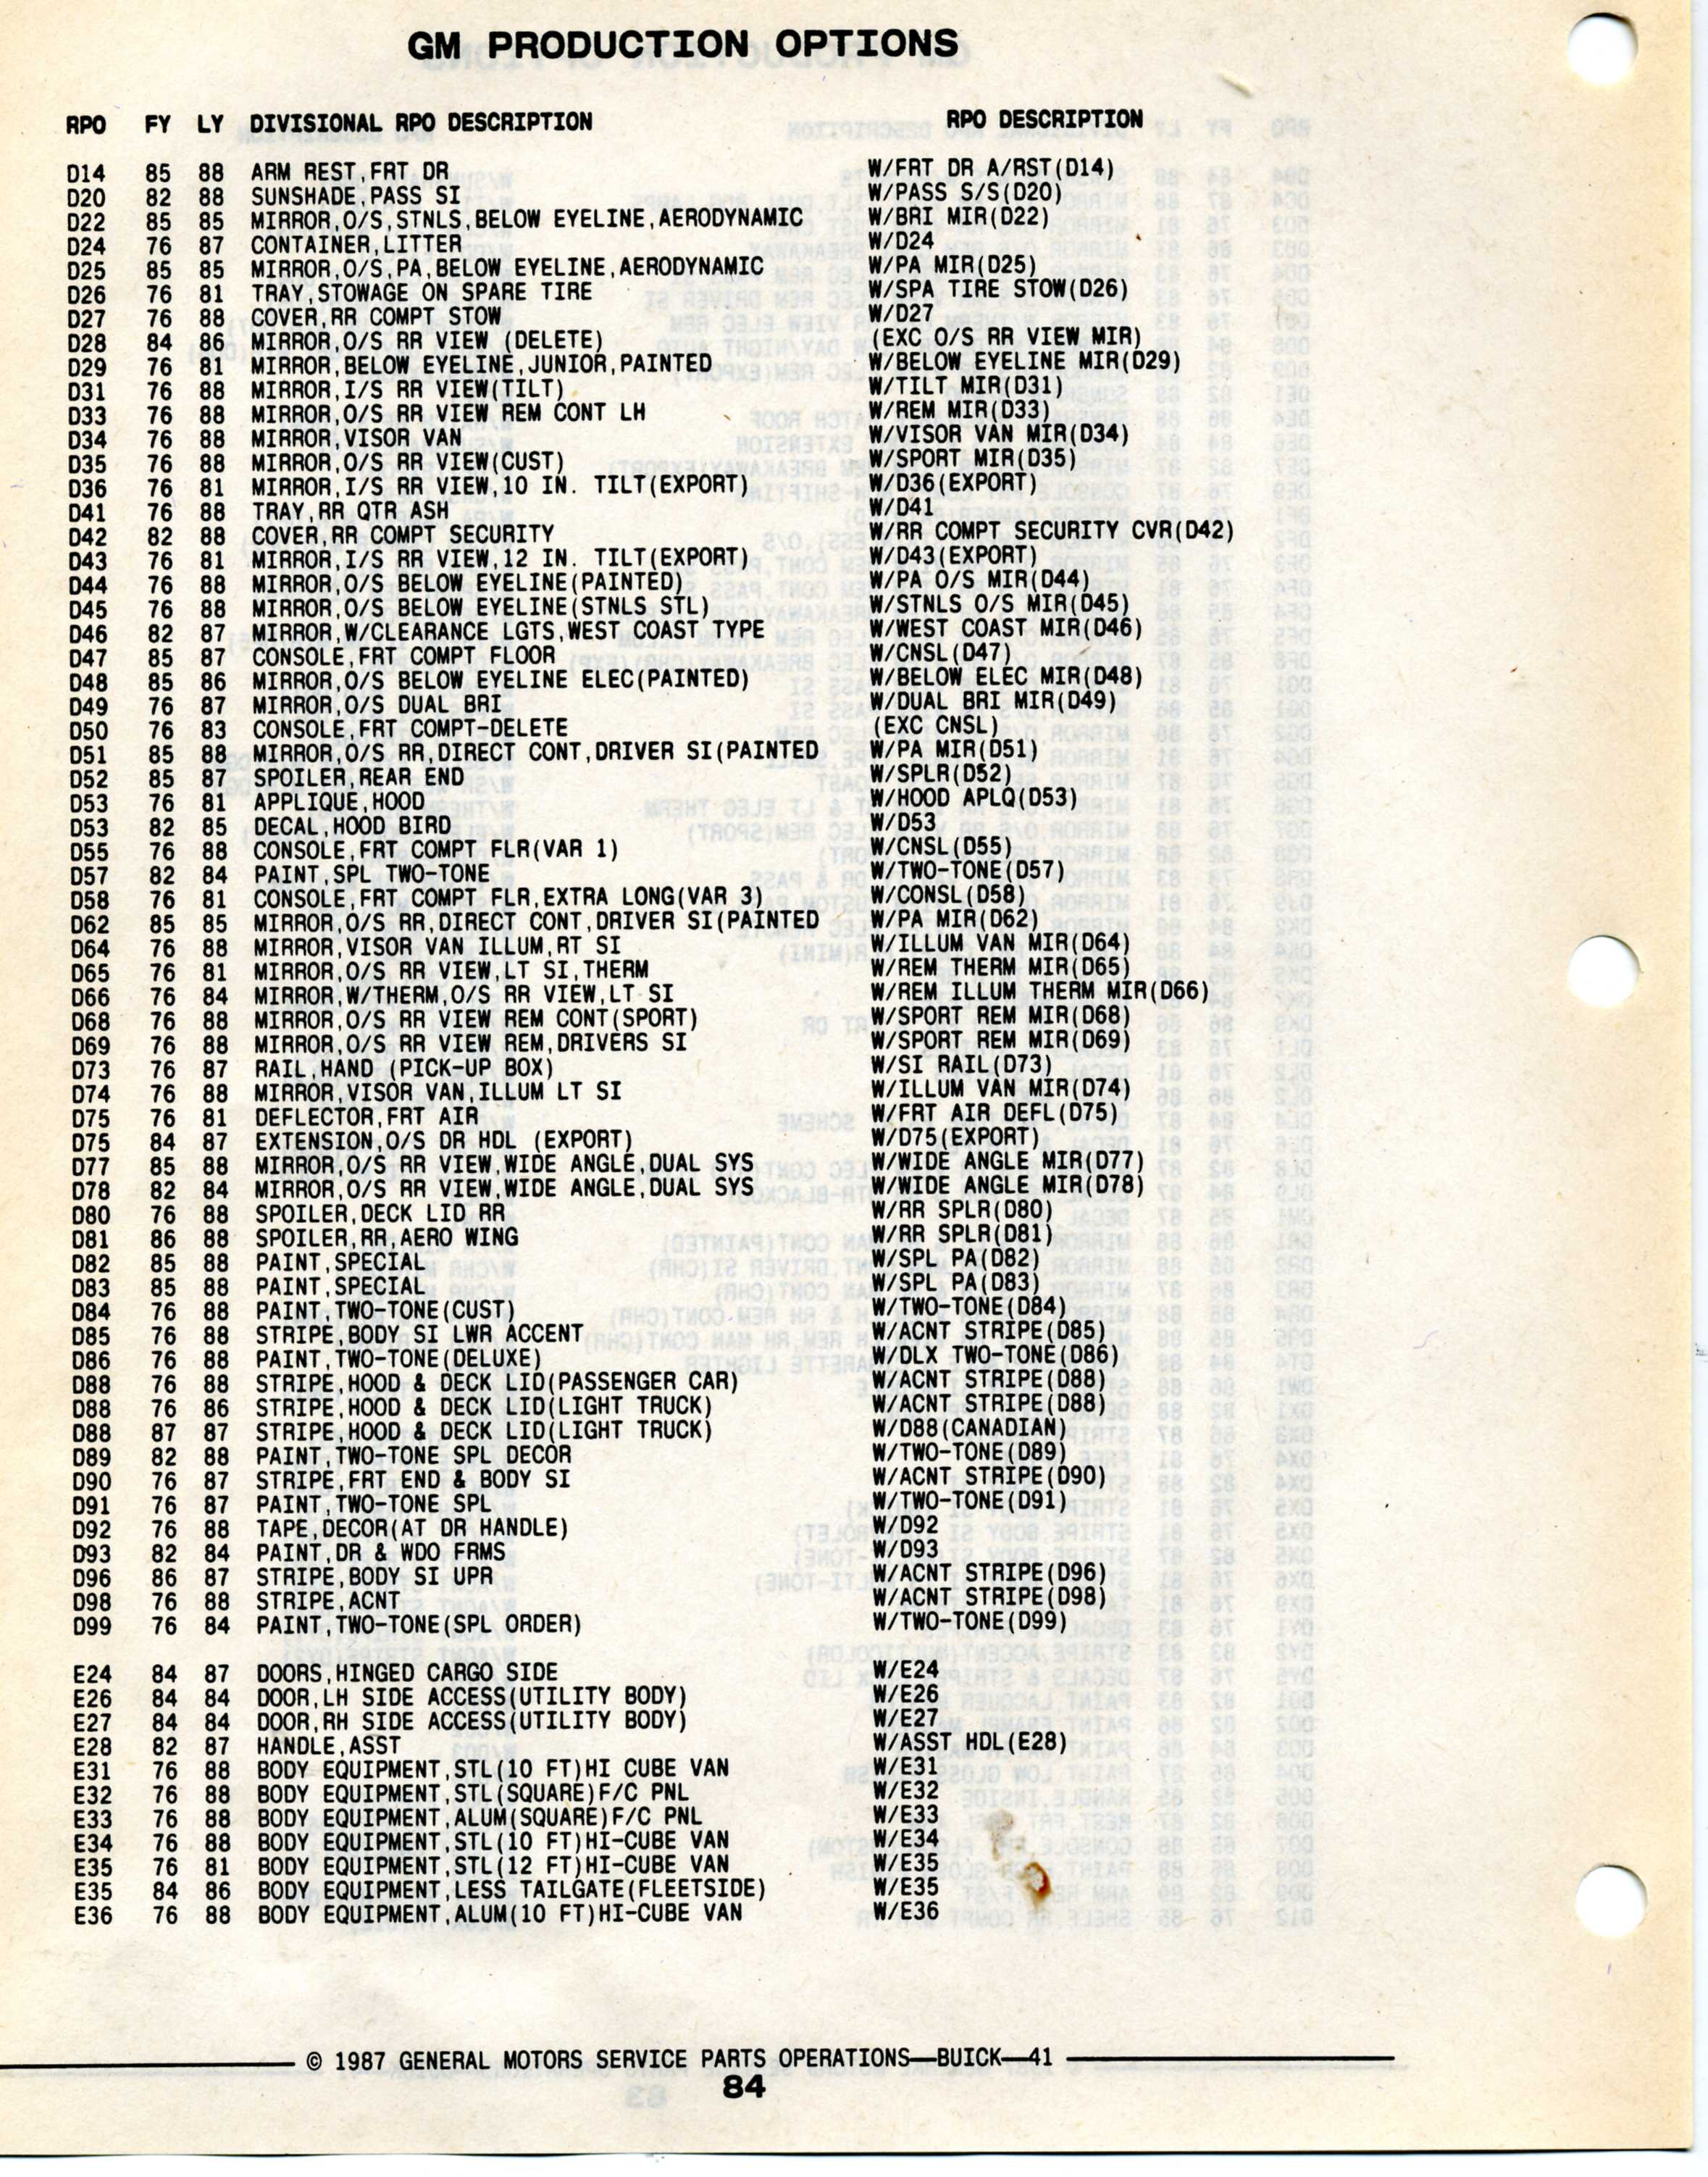 www 79-85gm-ebodies org: RPO list for all GM cars